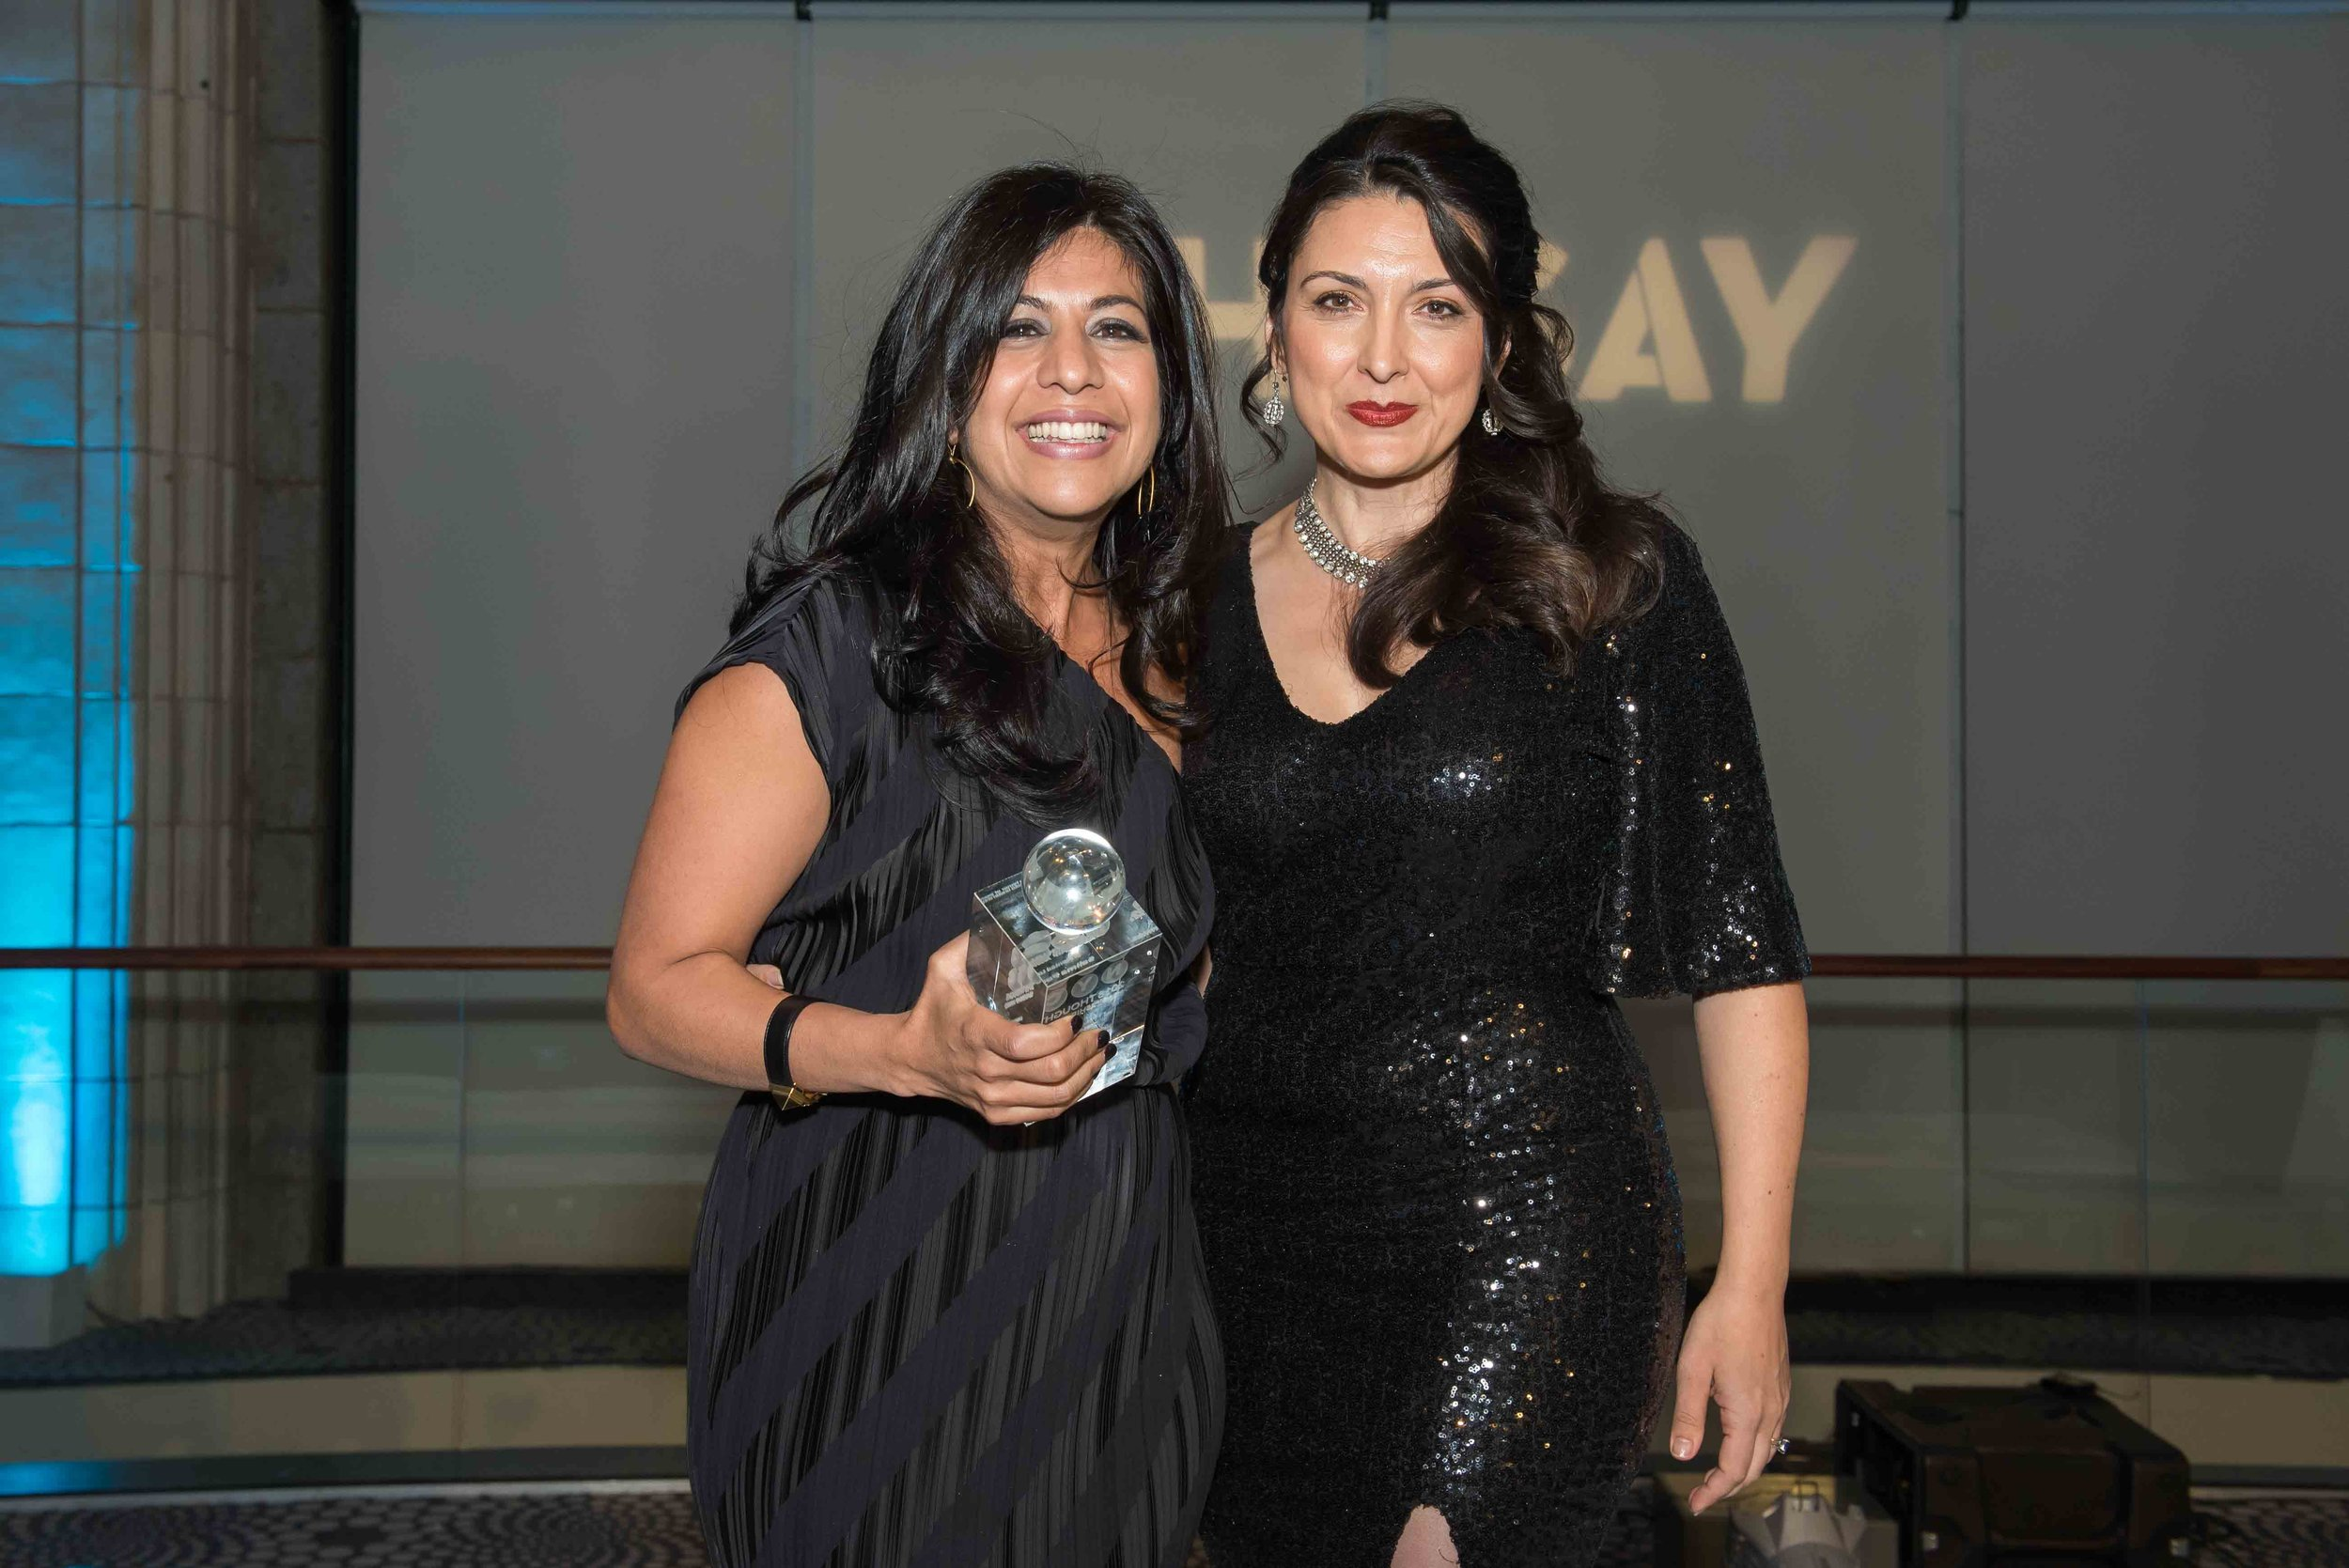 Honoree Salima Popatia,VP Global Online Marketing & Merchandising at Estee Lauder, and host Shenan Reed,President, Chief Client Officer, Publicis Groupe